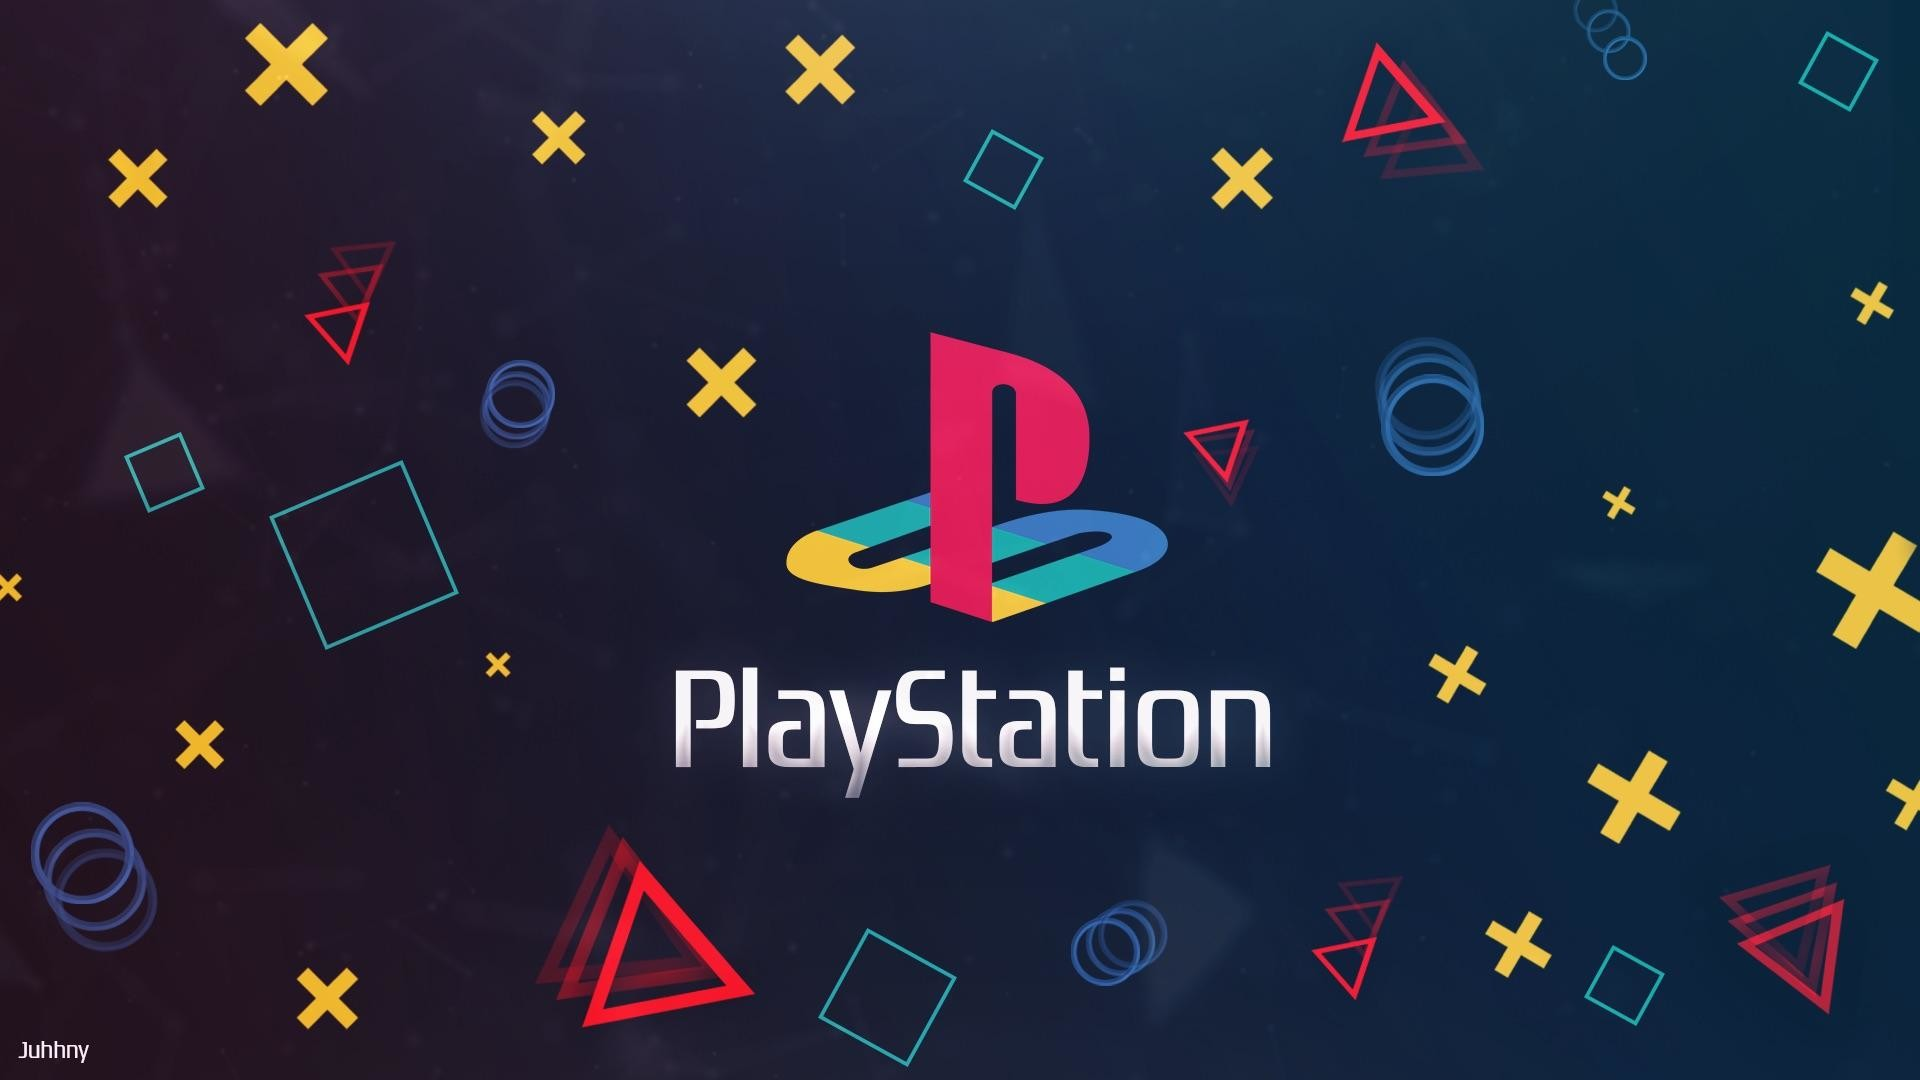 1920x1080 PlayStation Wallpaper design! Hope you guys like it!